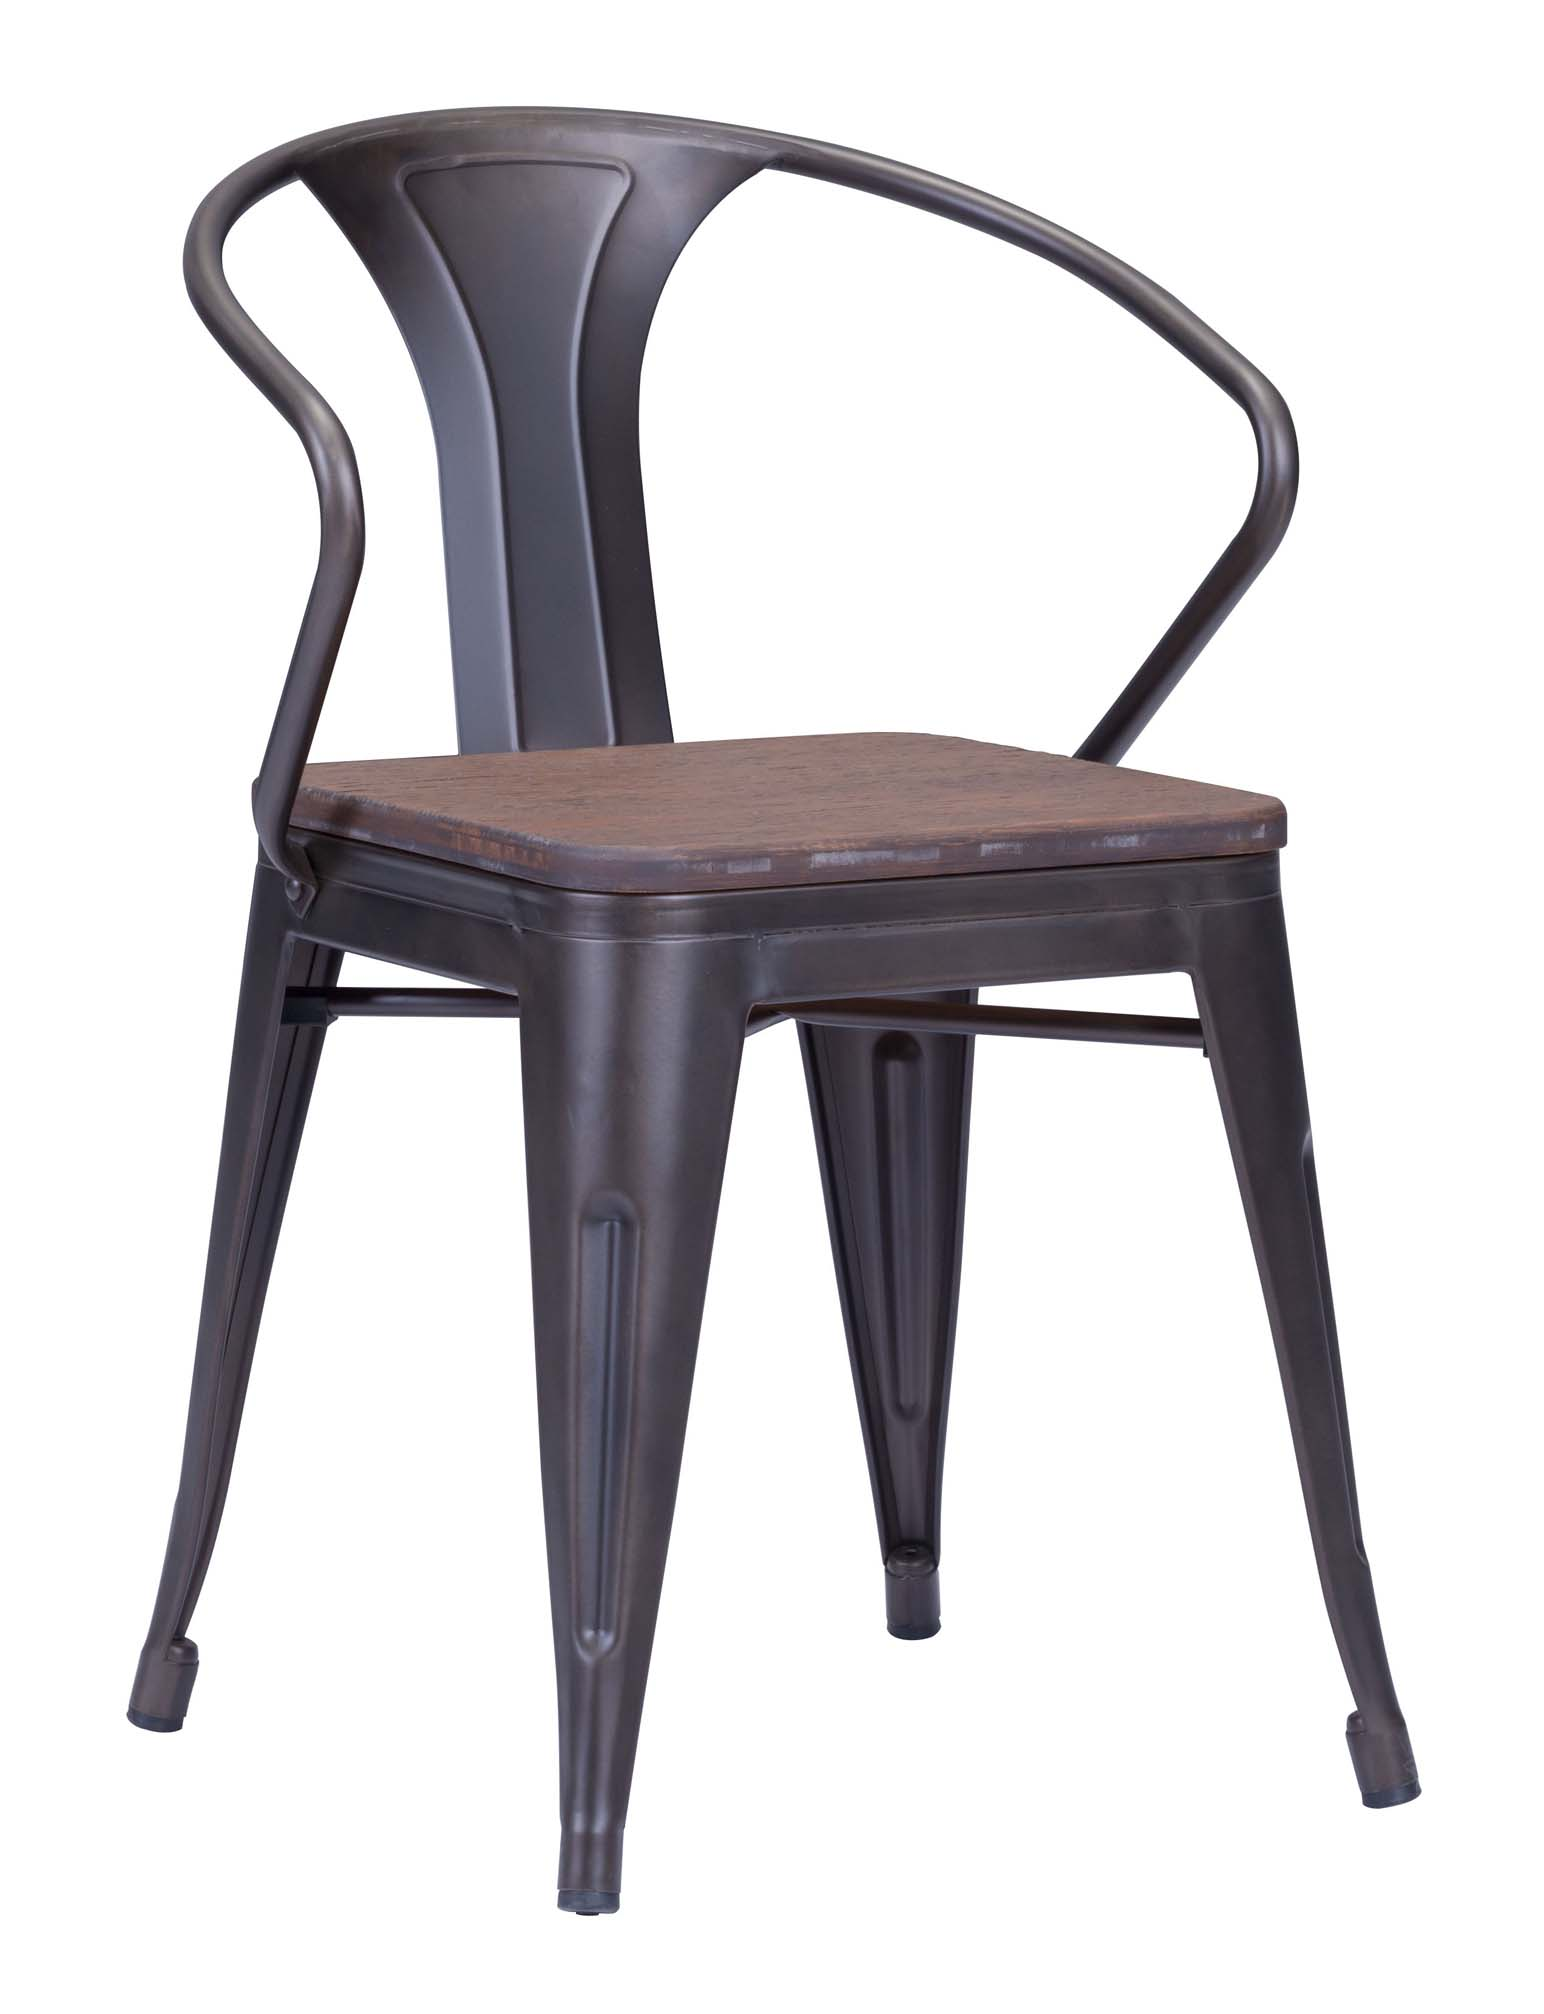 dining chair by zuo helix